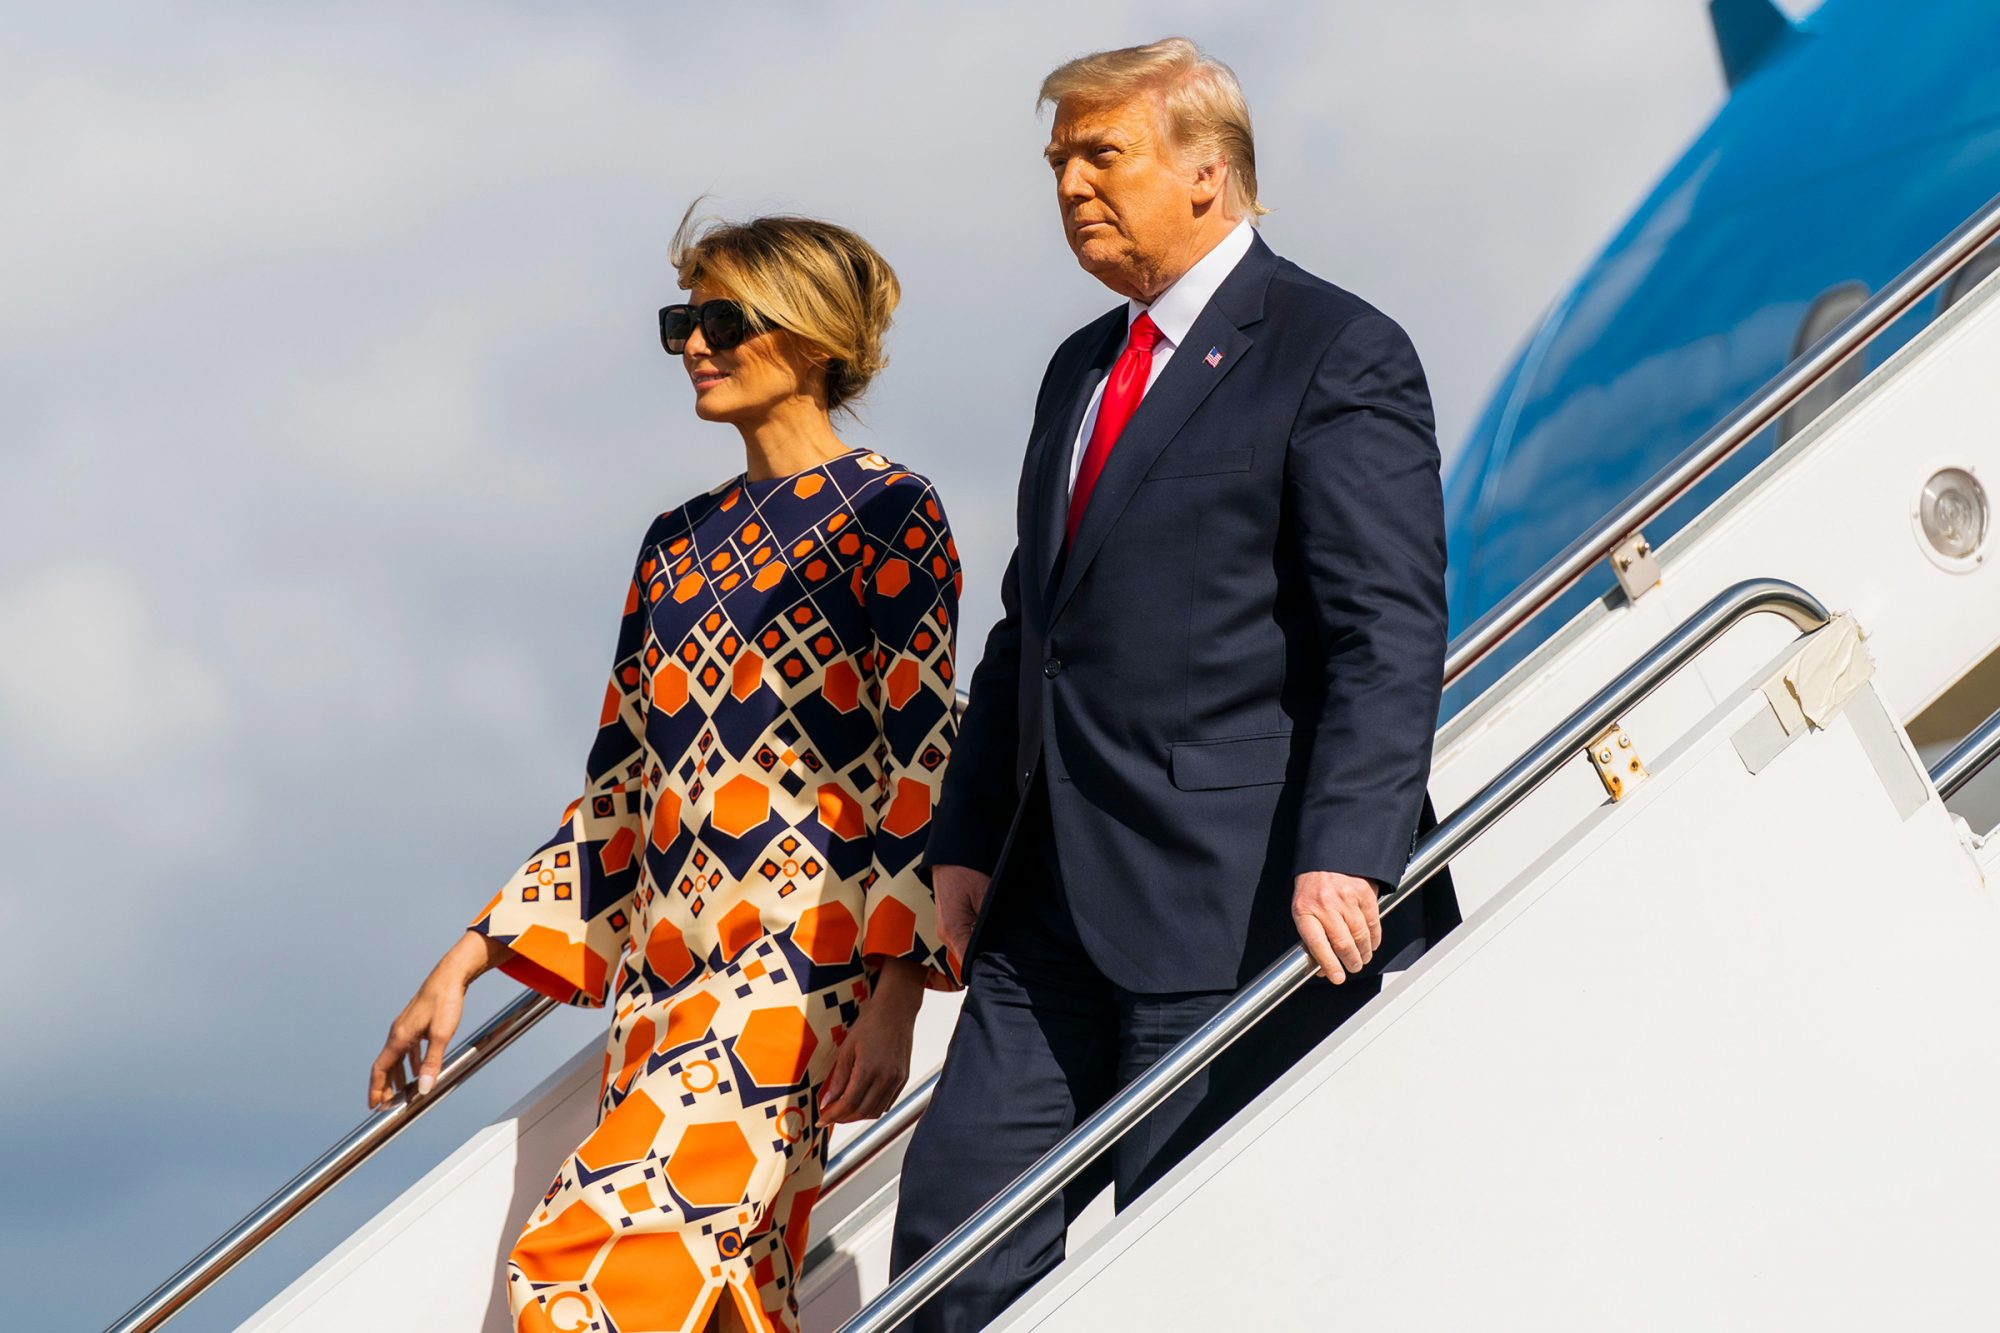 Former President Donald Trump and Melania Trump disembark from their final flight on Air Force One at Palm Beach International Airport in West Palm Beach, Fla Trump, West Palm Beach, United States - 20 Jan 2021